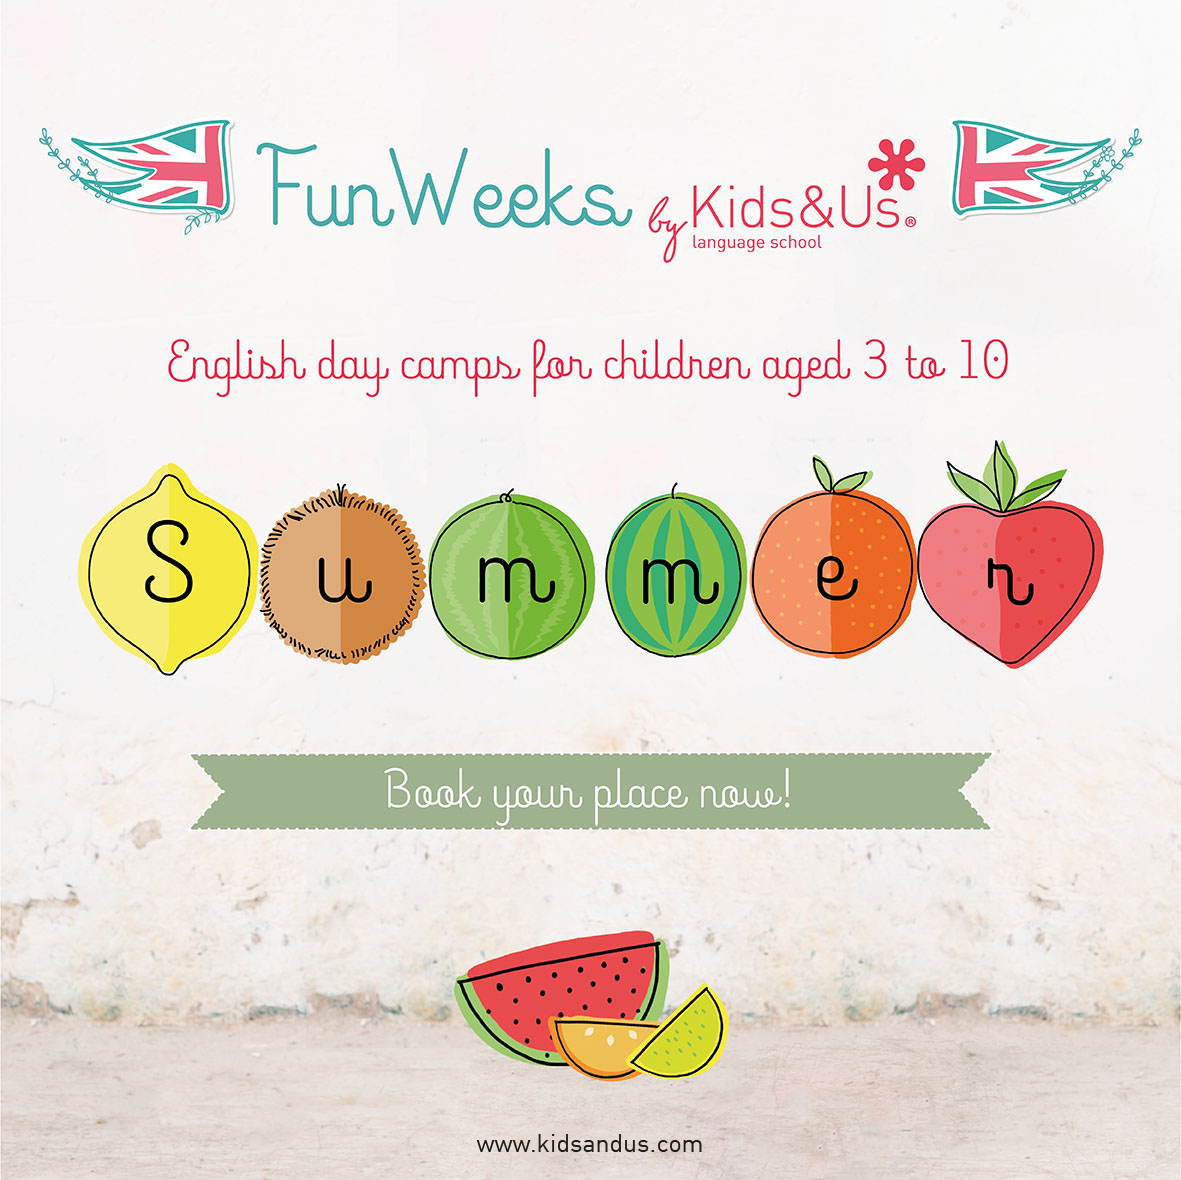 The Kids&Us Summer Fun Weeks are back!